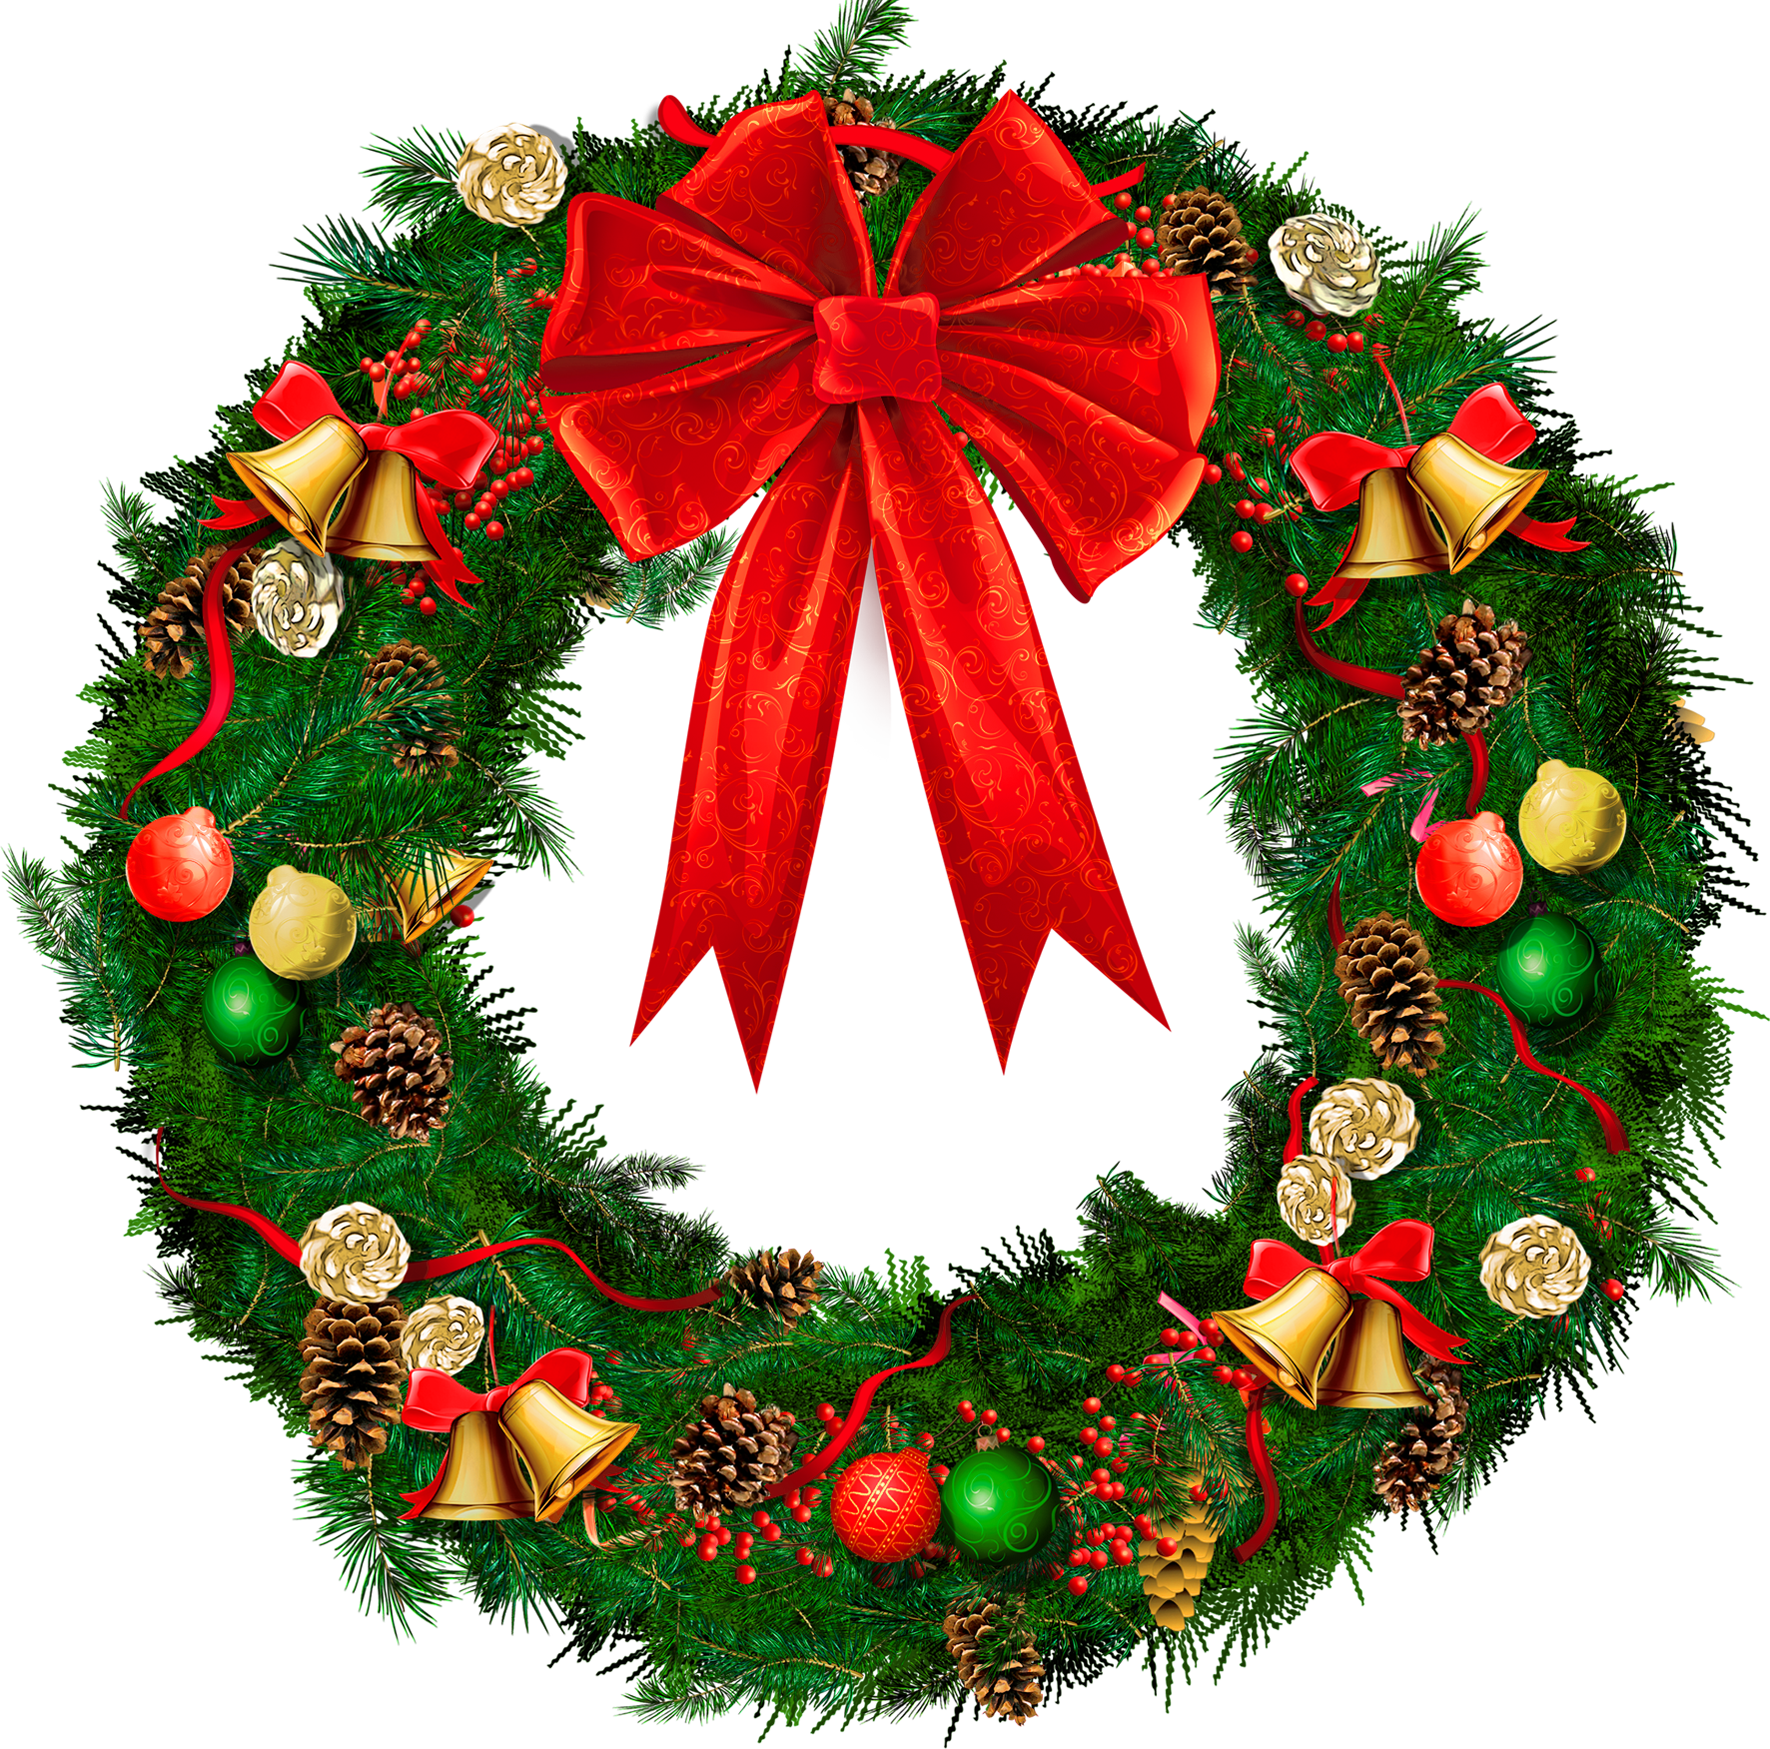 Christmas Wreath with Red Bow - Png Press - Transparent ...